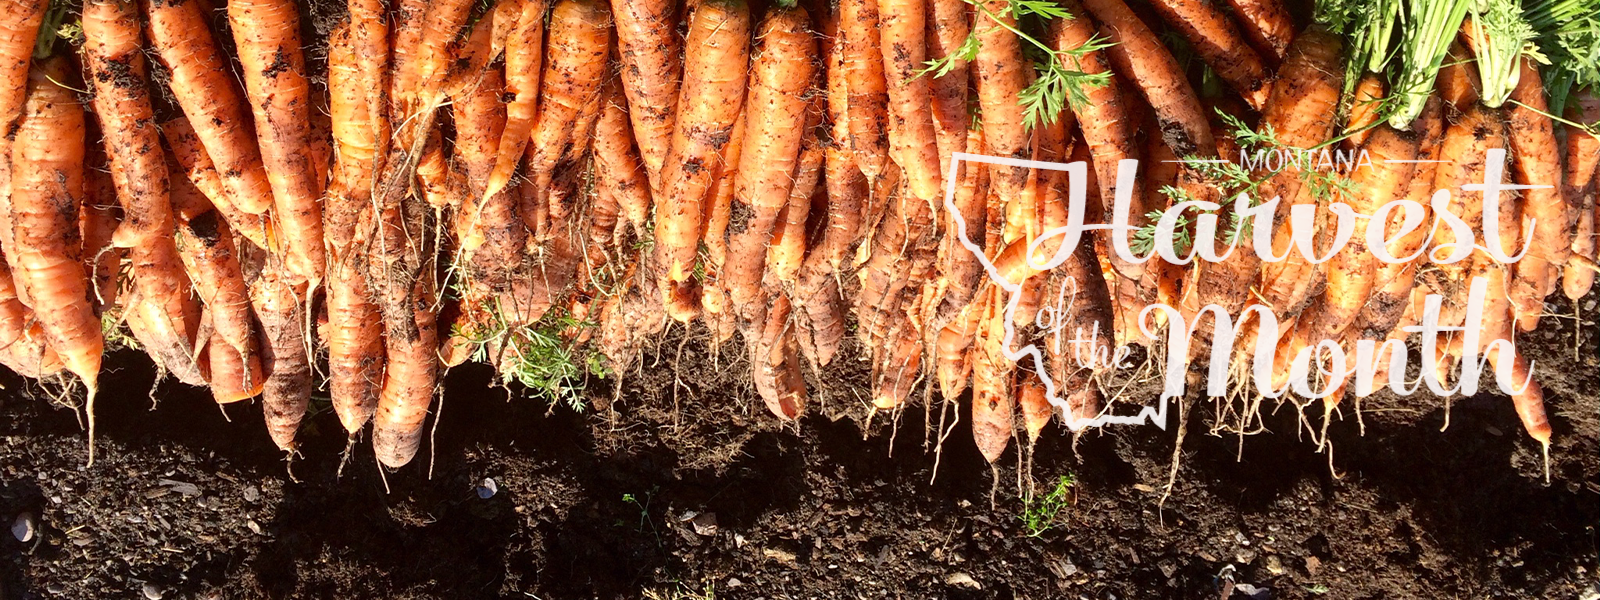 Carrots are December's Harvest of the Month in Montana!